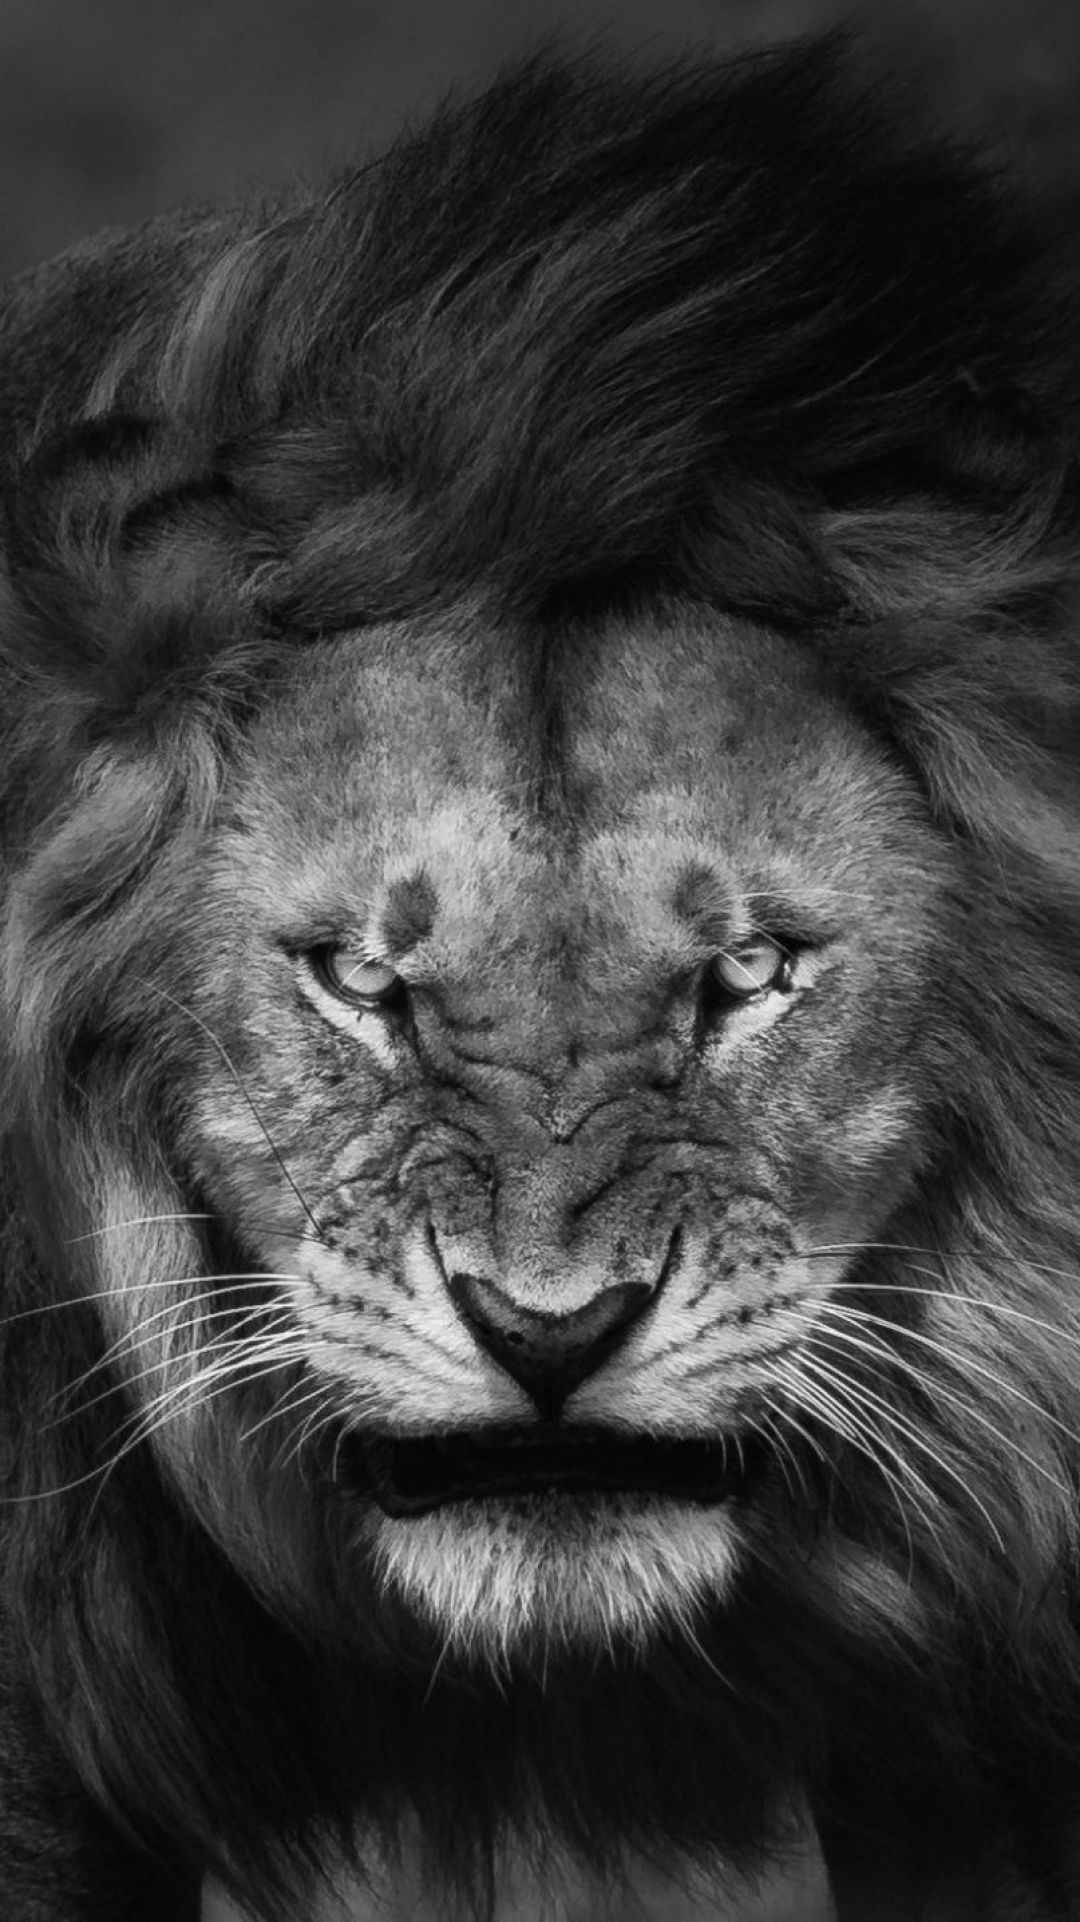 Lion Iphone Android Iphone Desktop Hd Backgrounds Wallpapers 1080p 4k In 2020 Lion Photography Lion Wallpaper Cat Wallpaper